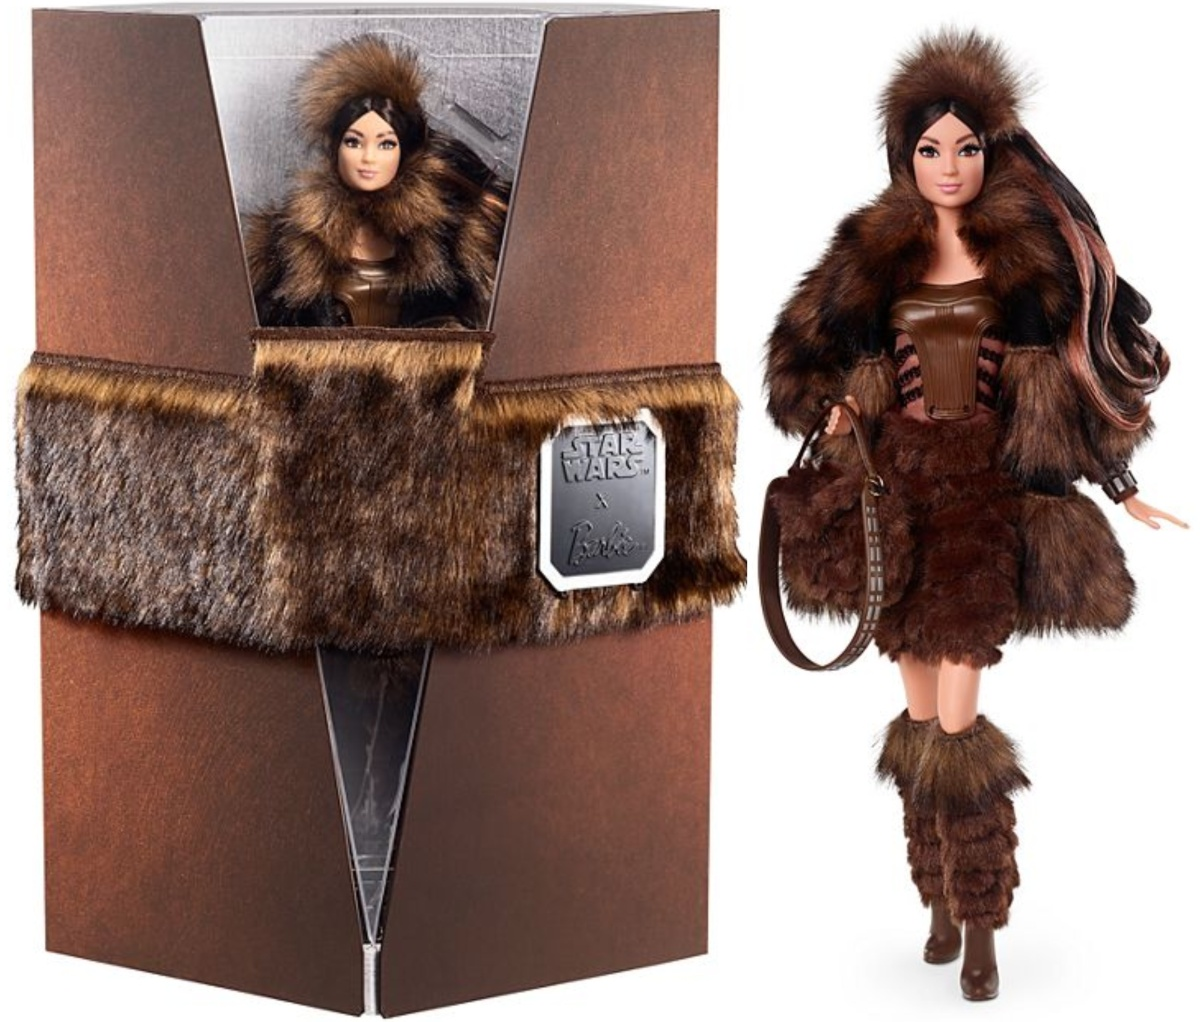 Chewbacca-inspired Barbie Doll